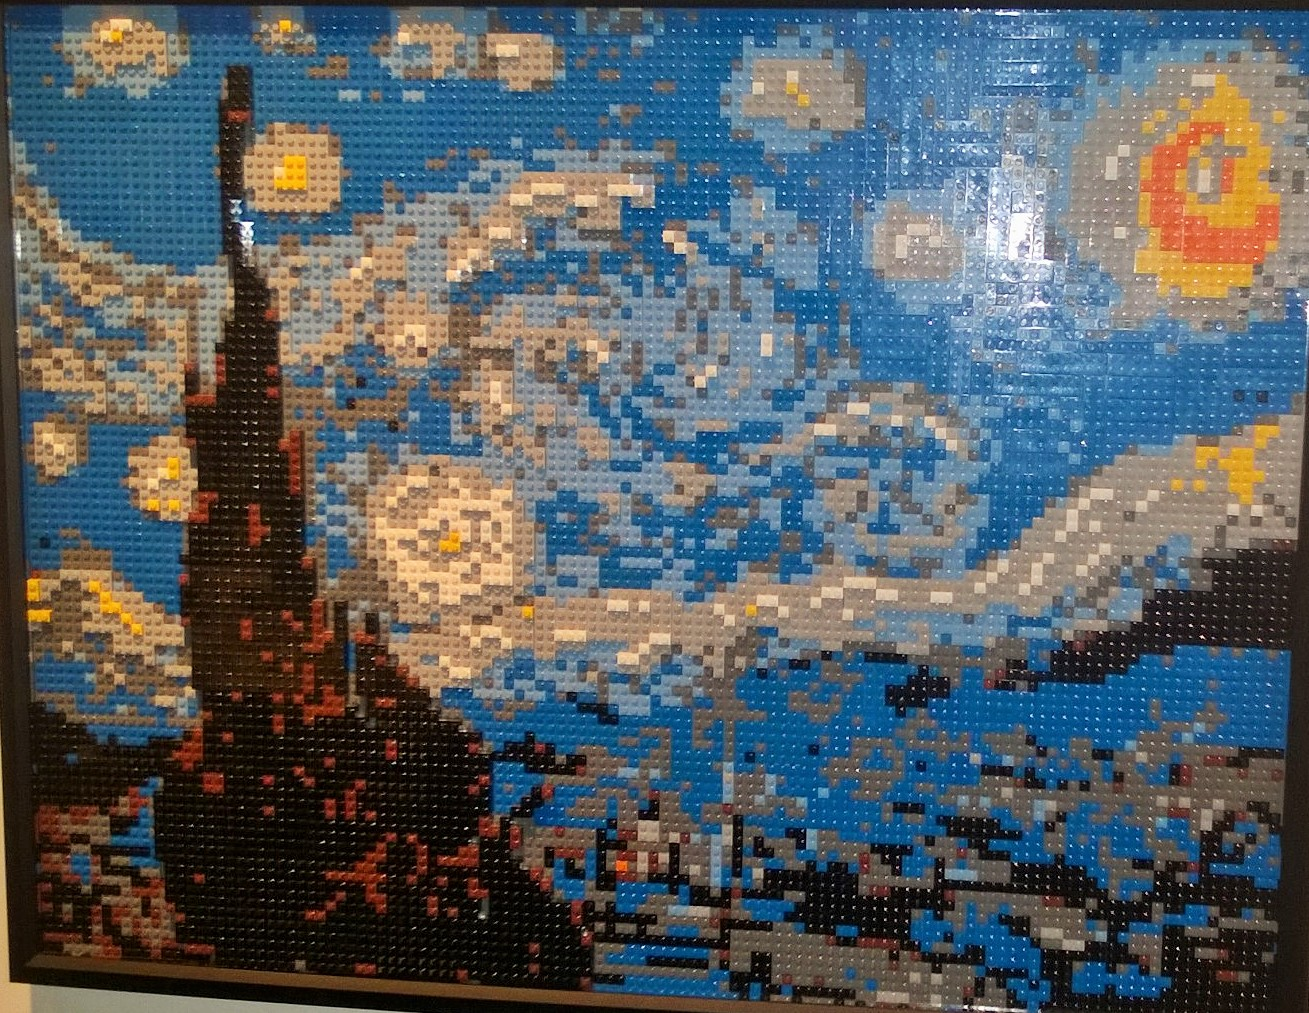 The Art of the Brick at the Franklin Institute